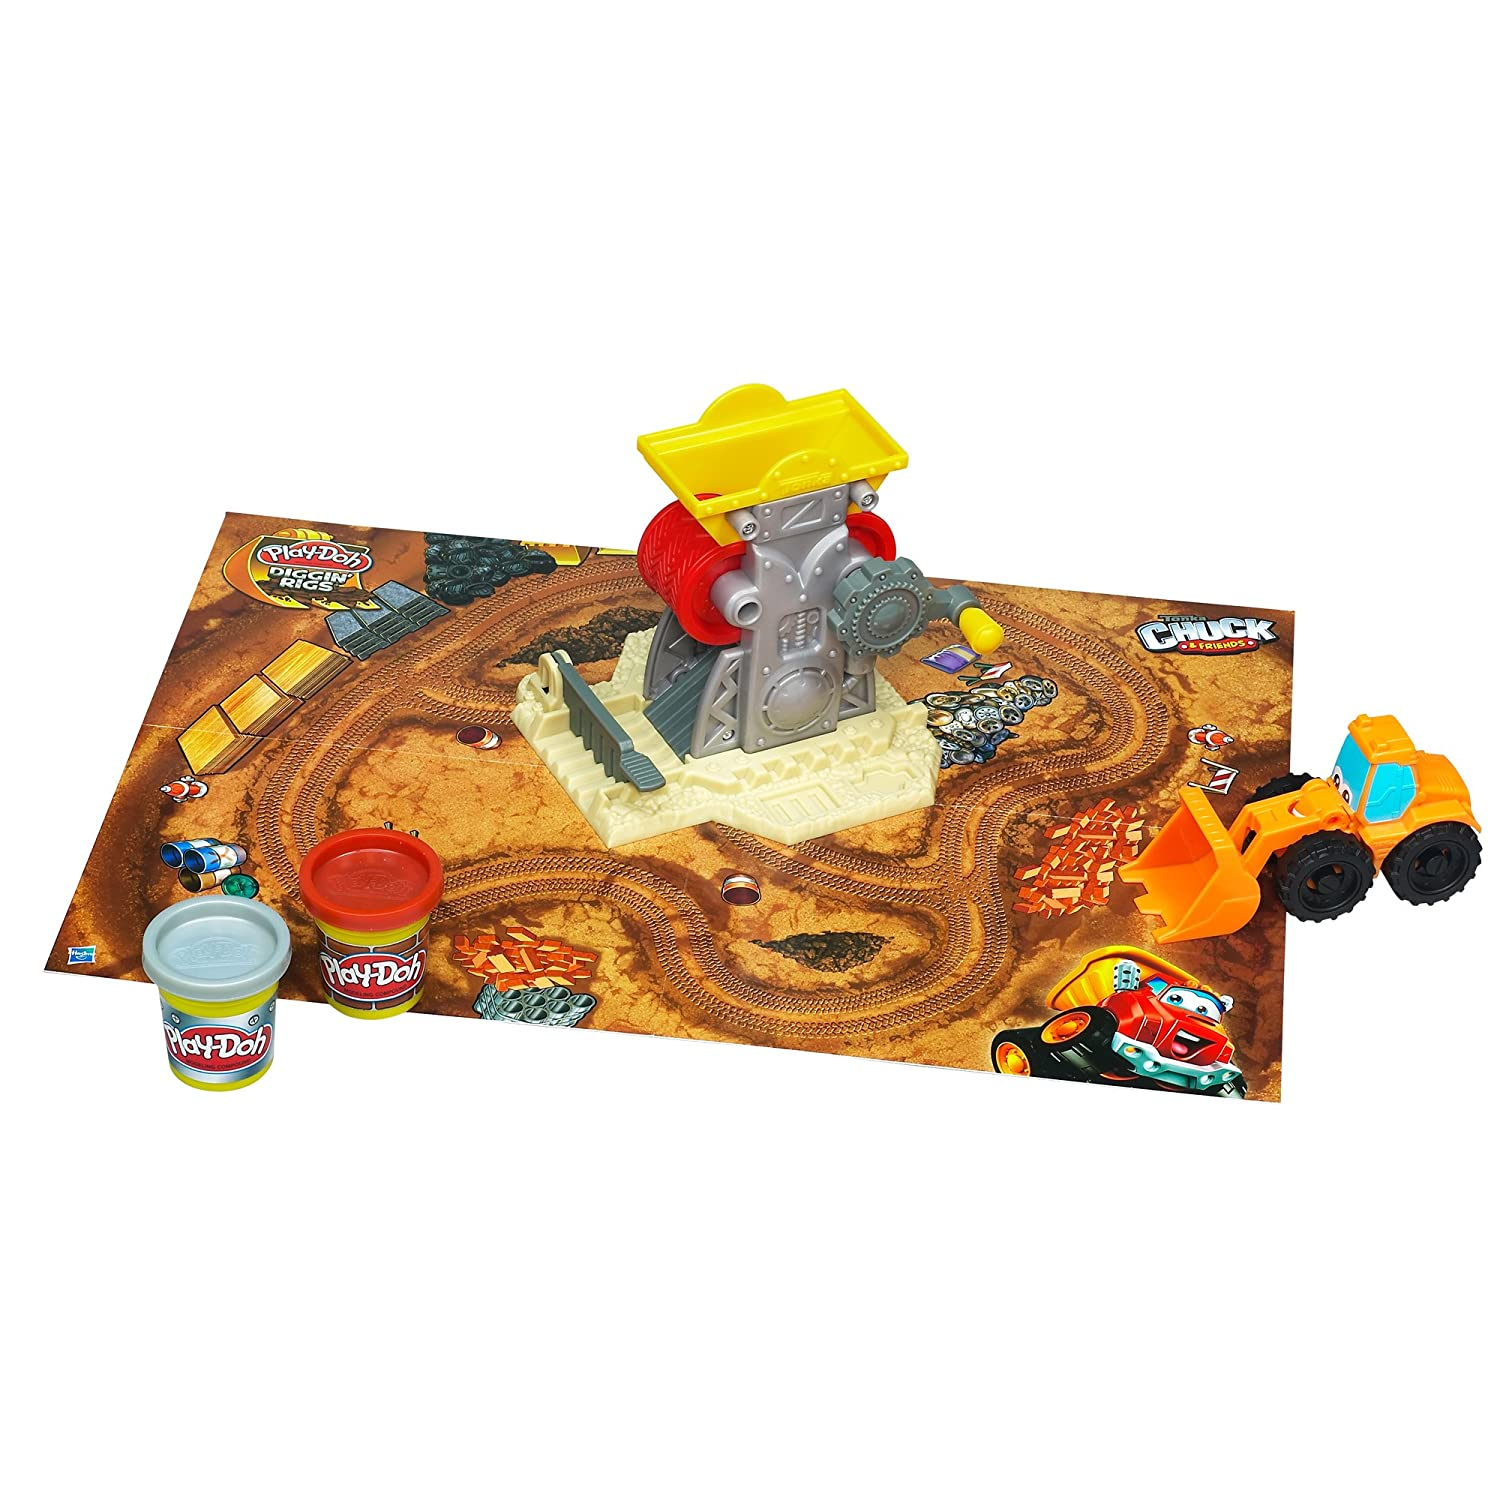 Play-Doh Diggin' Rigs Tonka Chuck 'N Friends Brick Mill Set by Play-Doh TOY (English Manual)